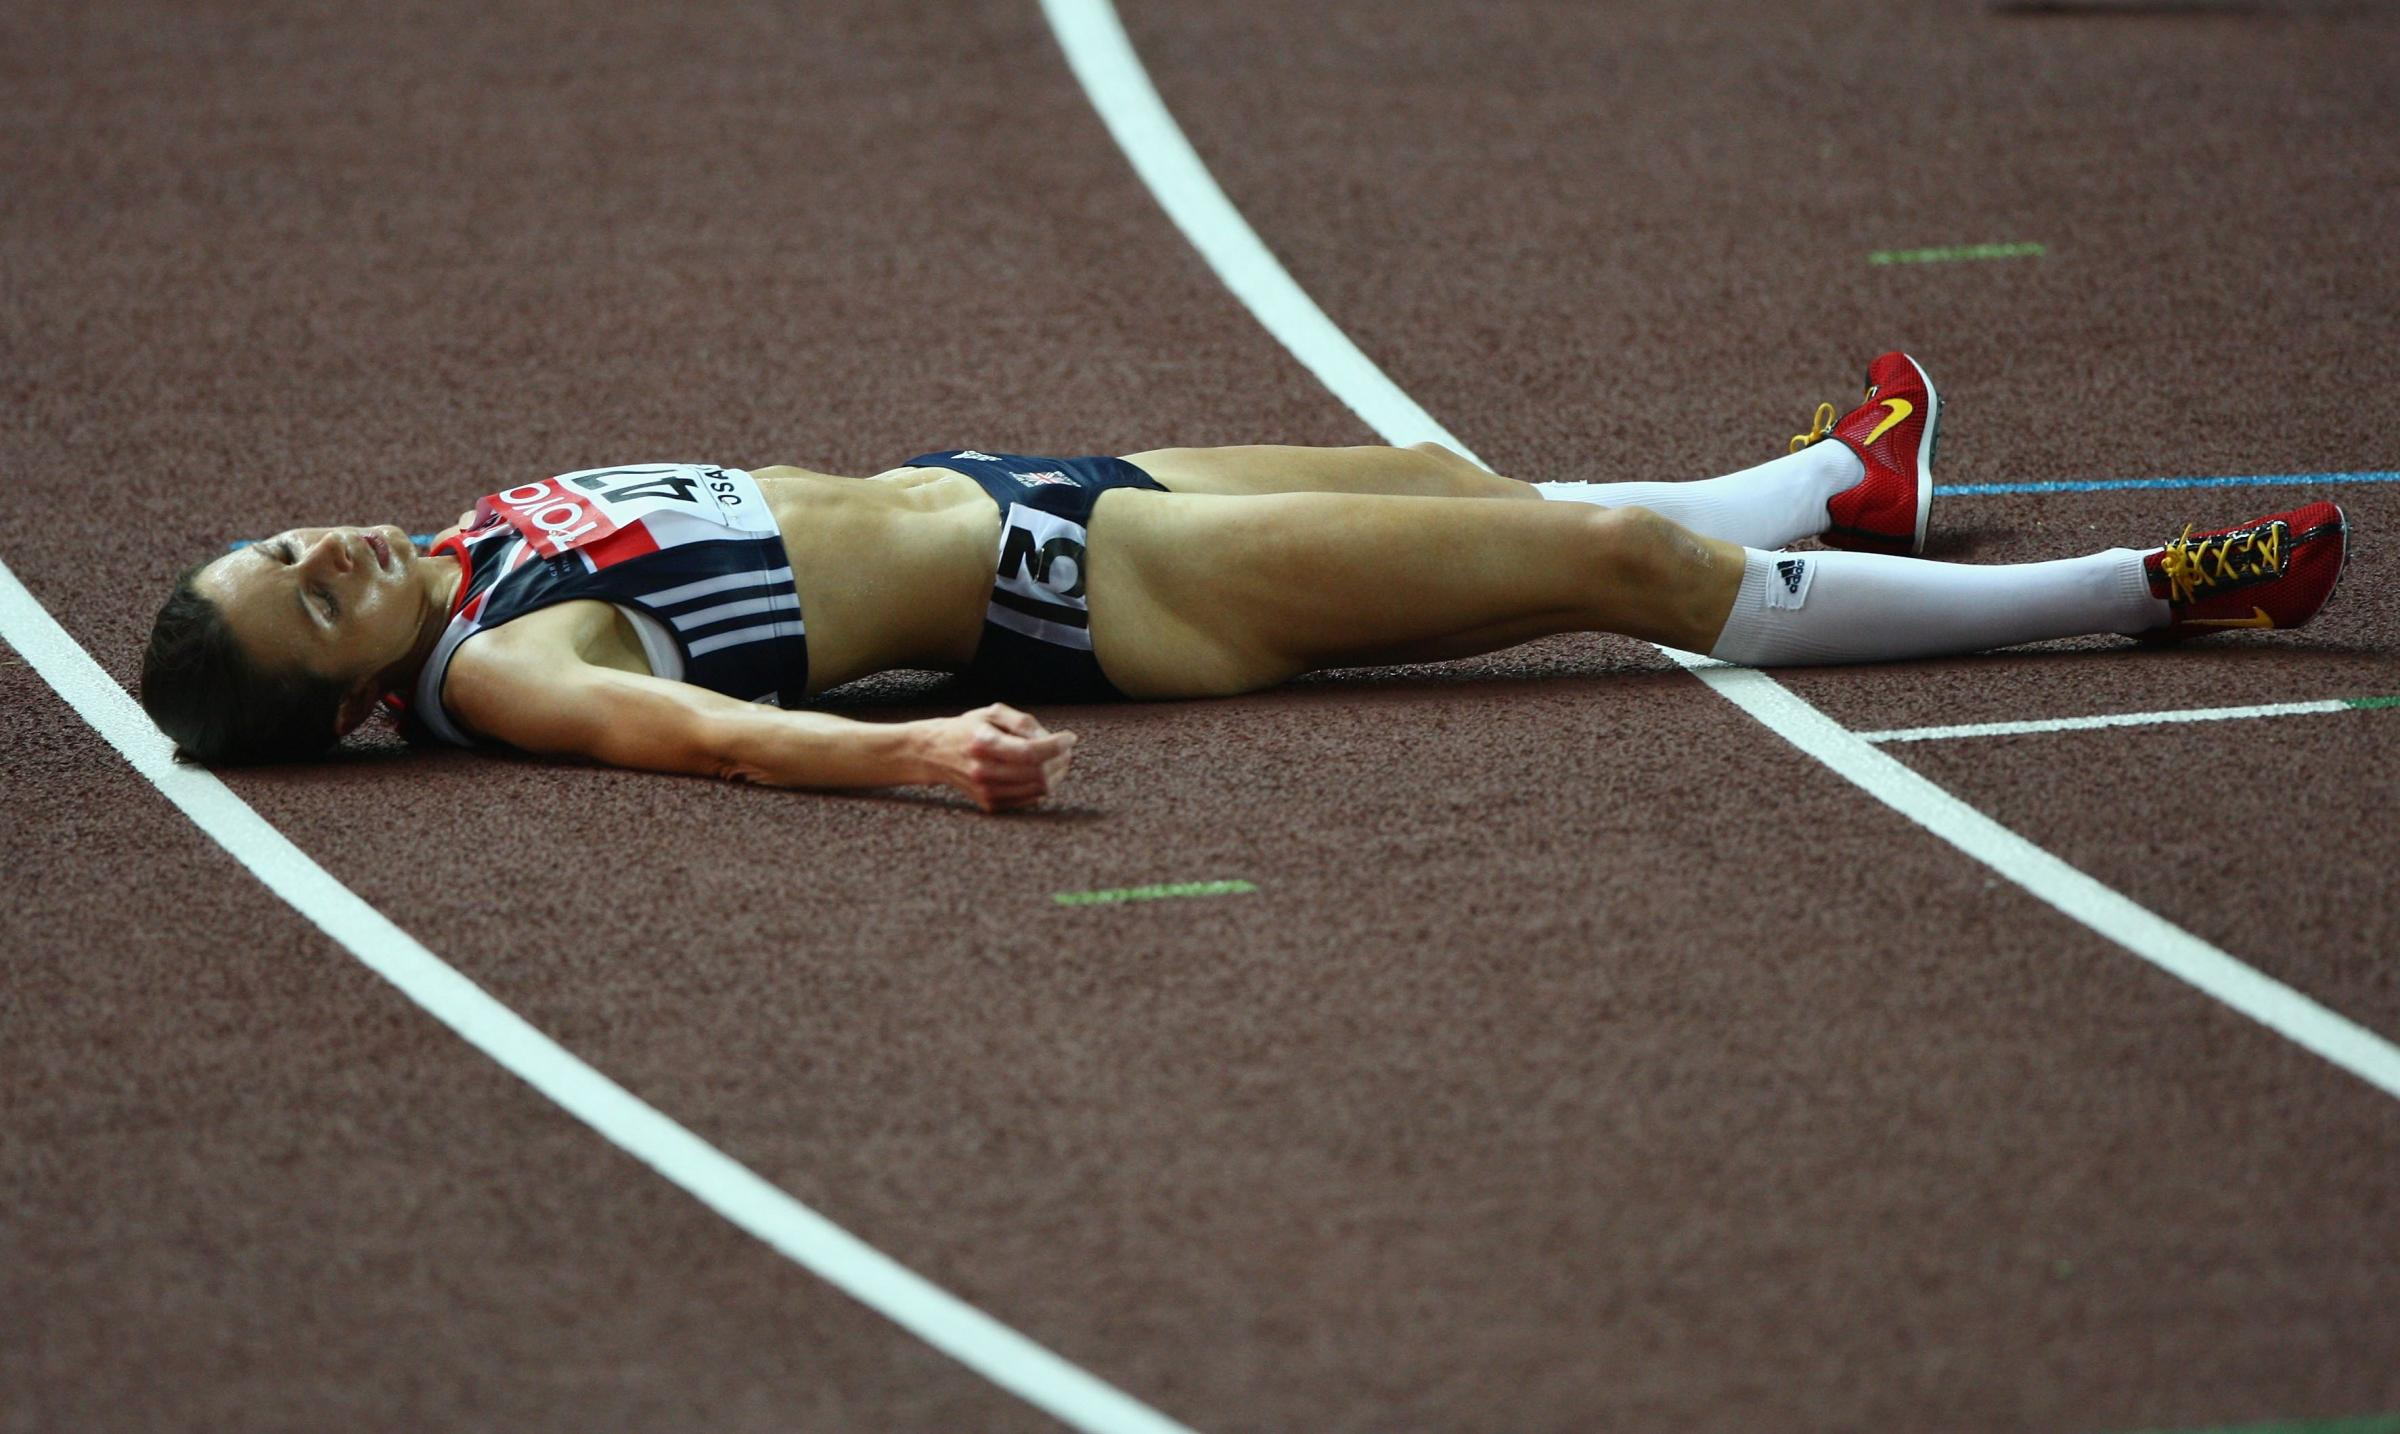 FLASHBACK: Jo Pavey of Great Britain lays exhausted after finishing fourth in the women's 10,000m final at the 2007 World Athletics Championships in Osaka. Picture: Getty Images